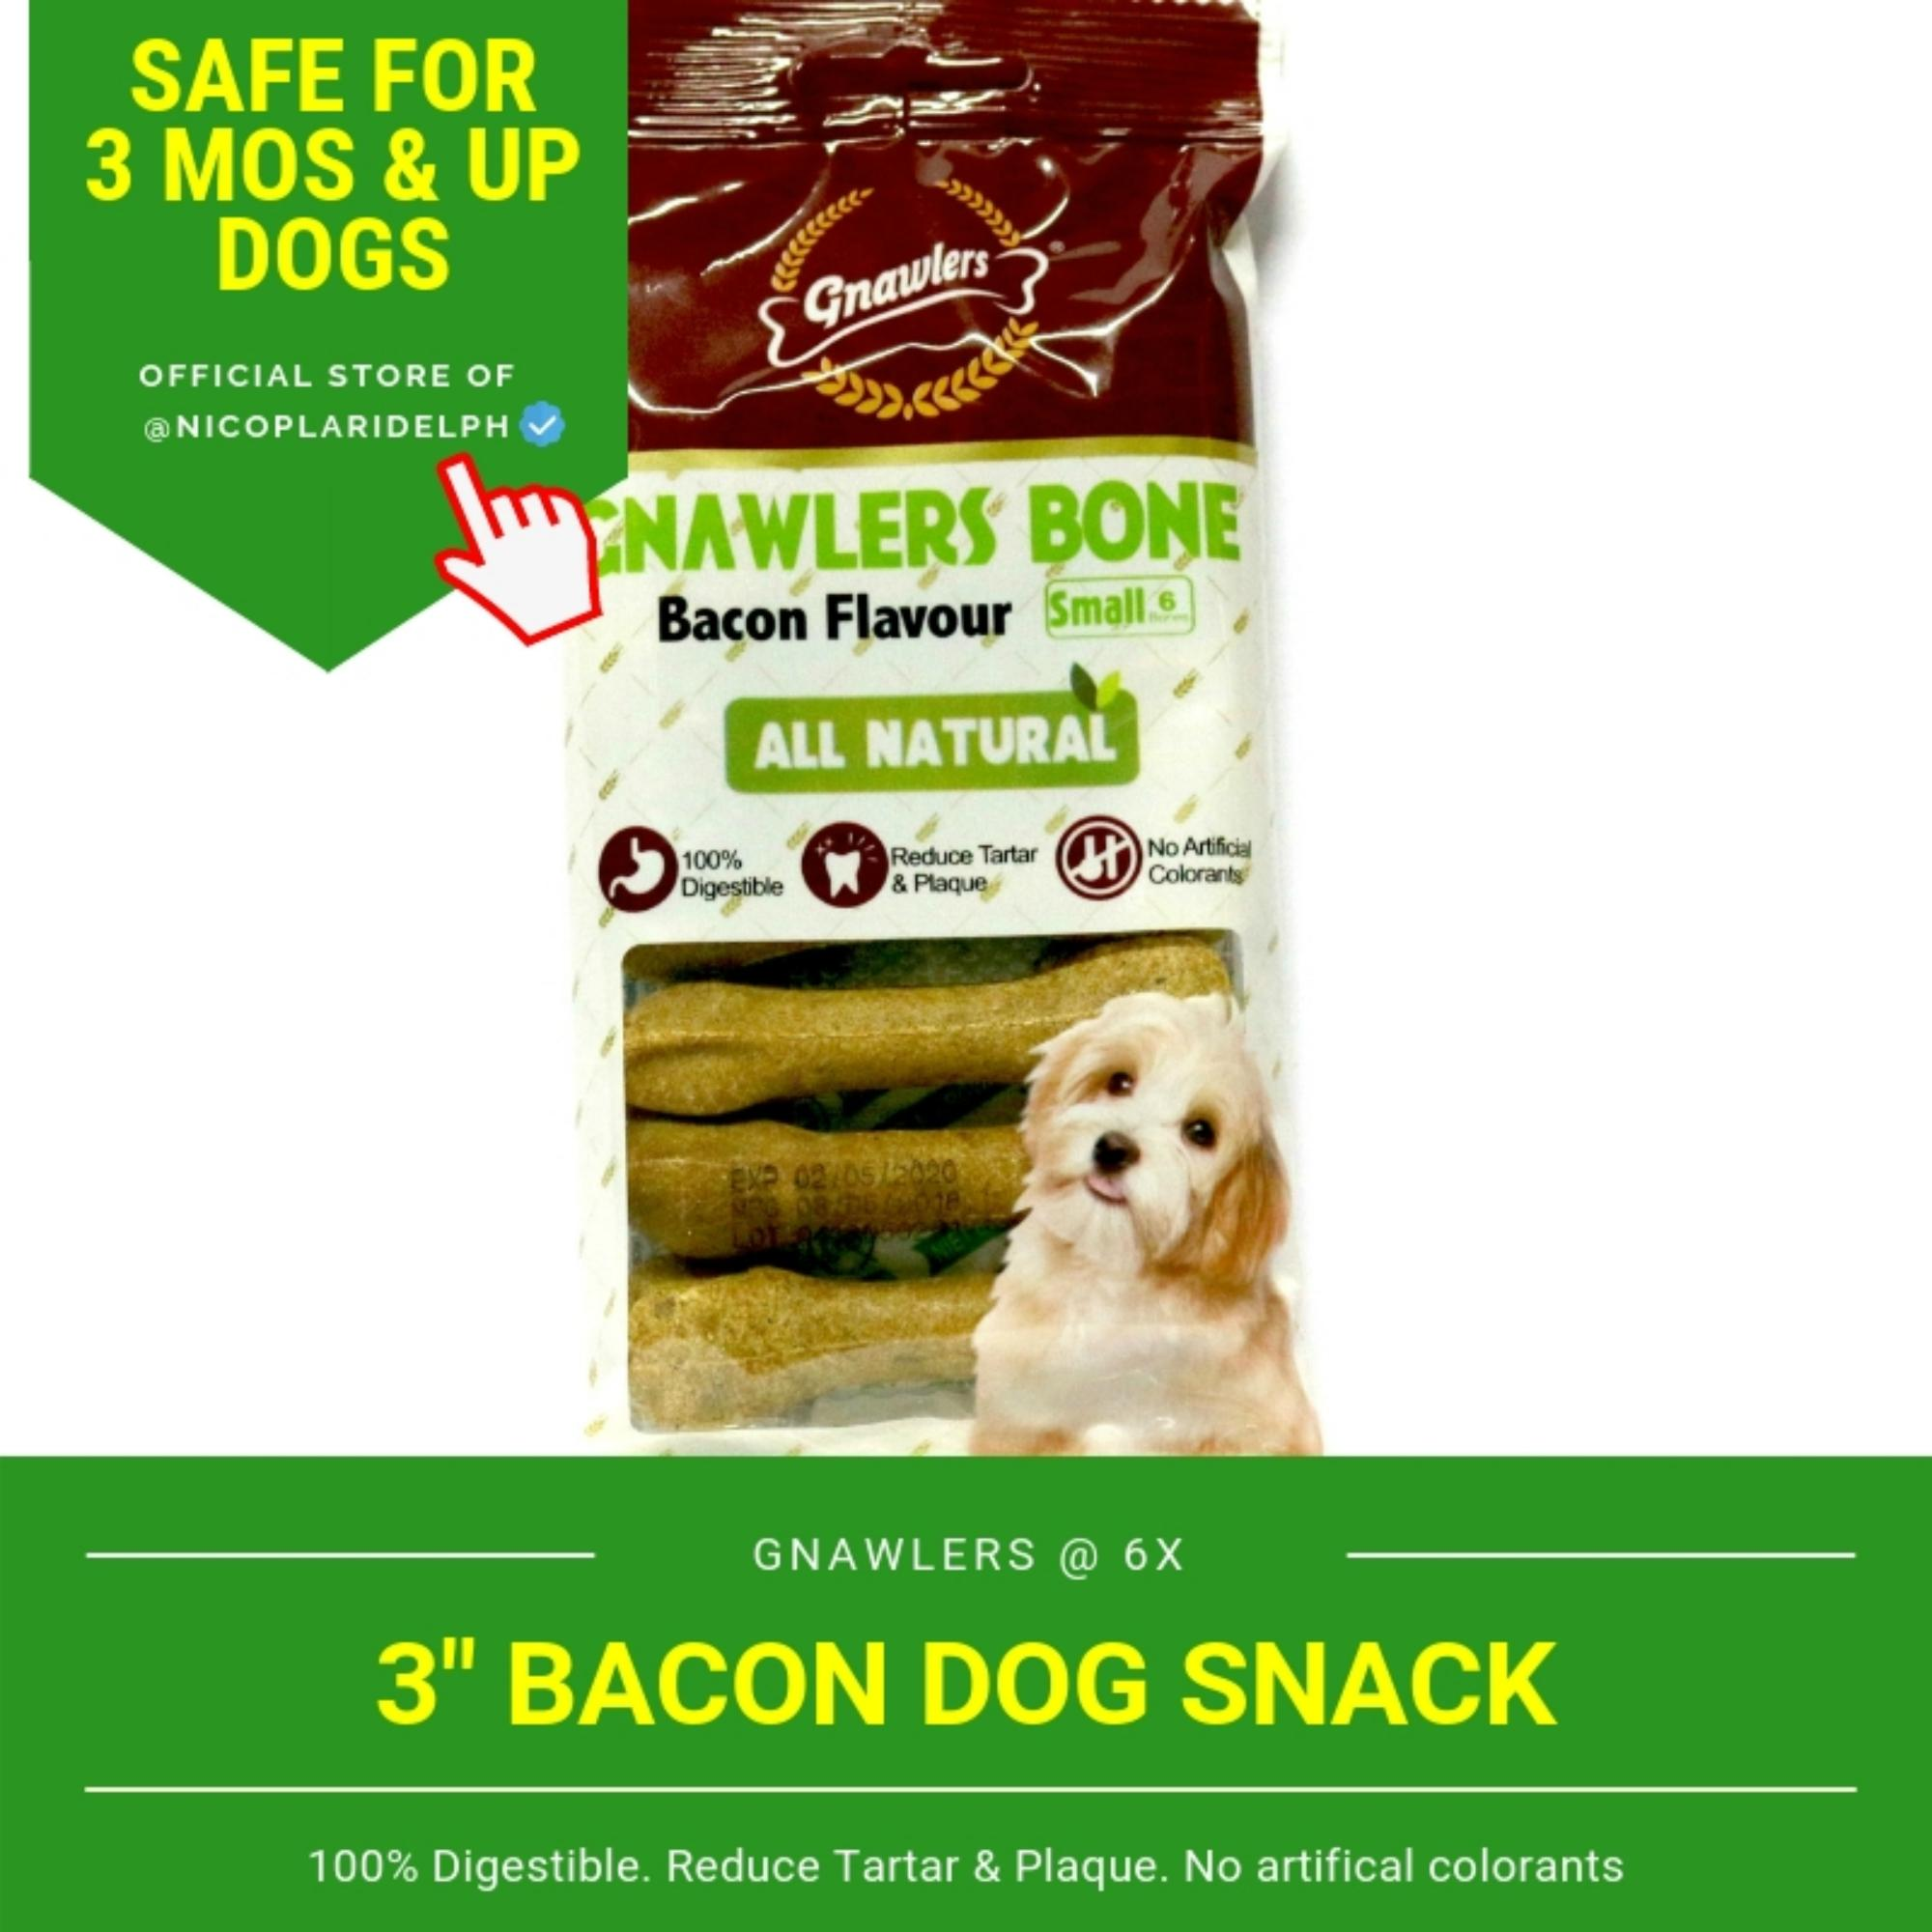 Gnawlers 3-Inch Bacon Dog Snack (108g) By Nicoplaridelph.